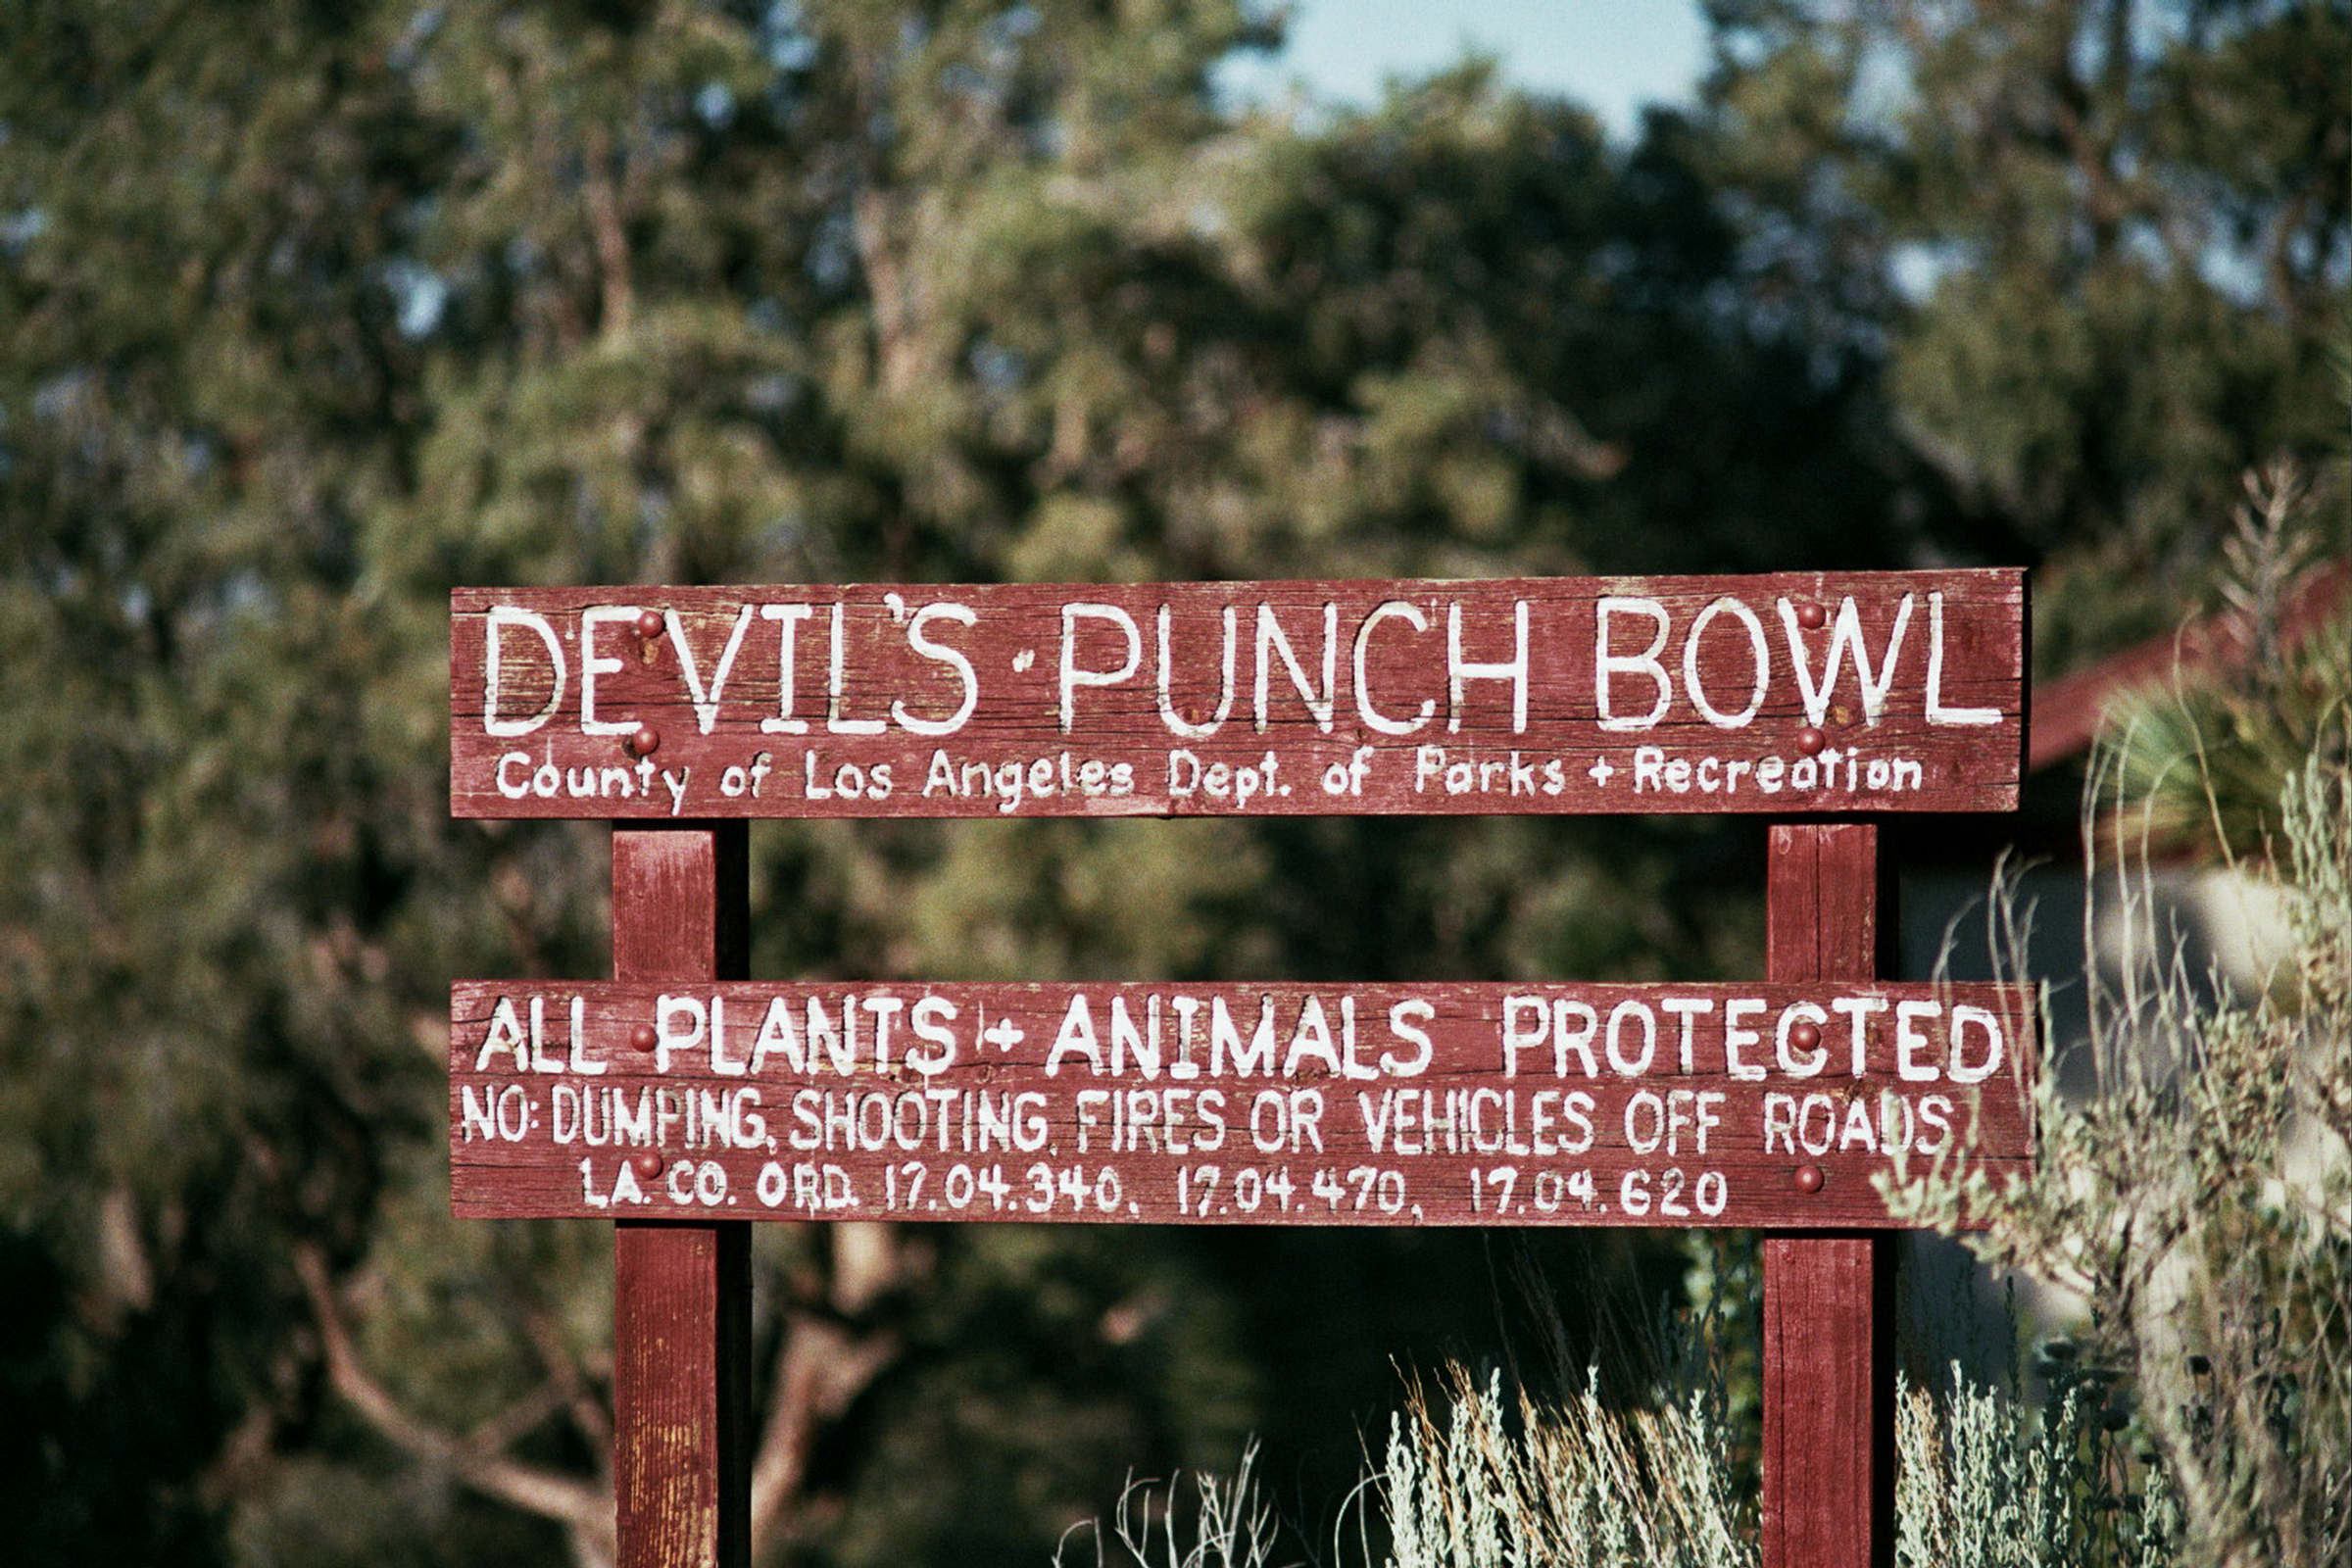 #devil's punch bowl